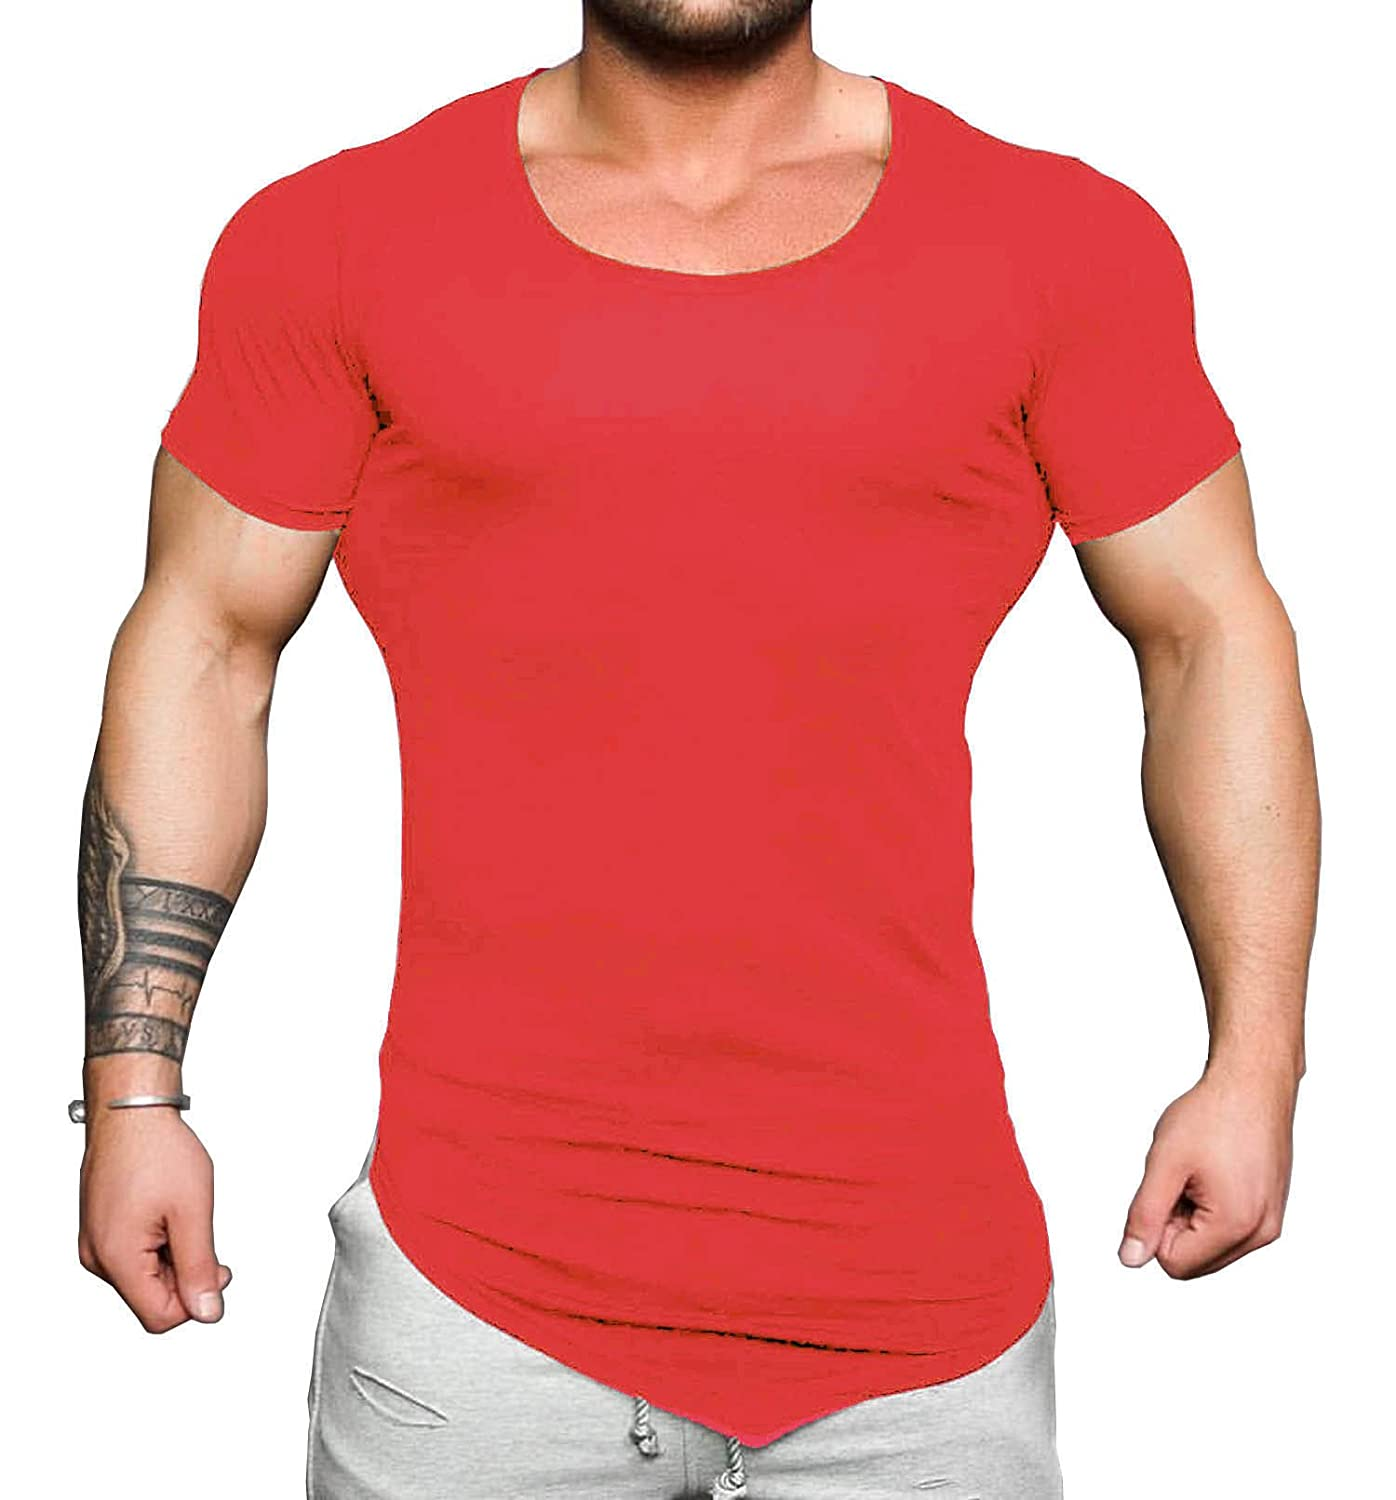 Coofandy Men's Bodybuilding Muscle Training Short Sleeve gym Workout Fitness T shirt